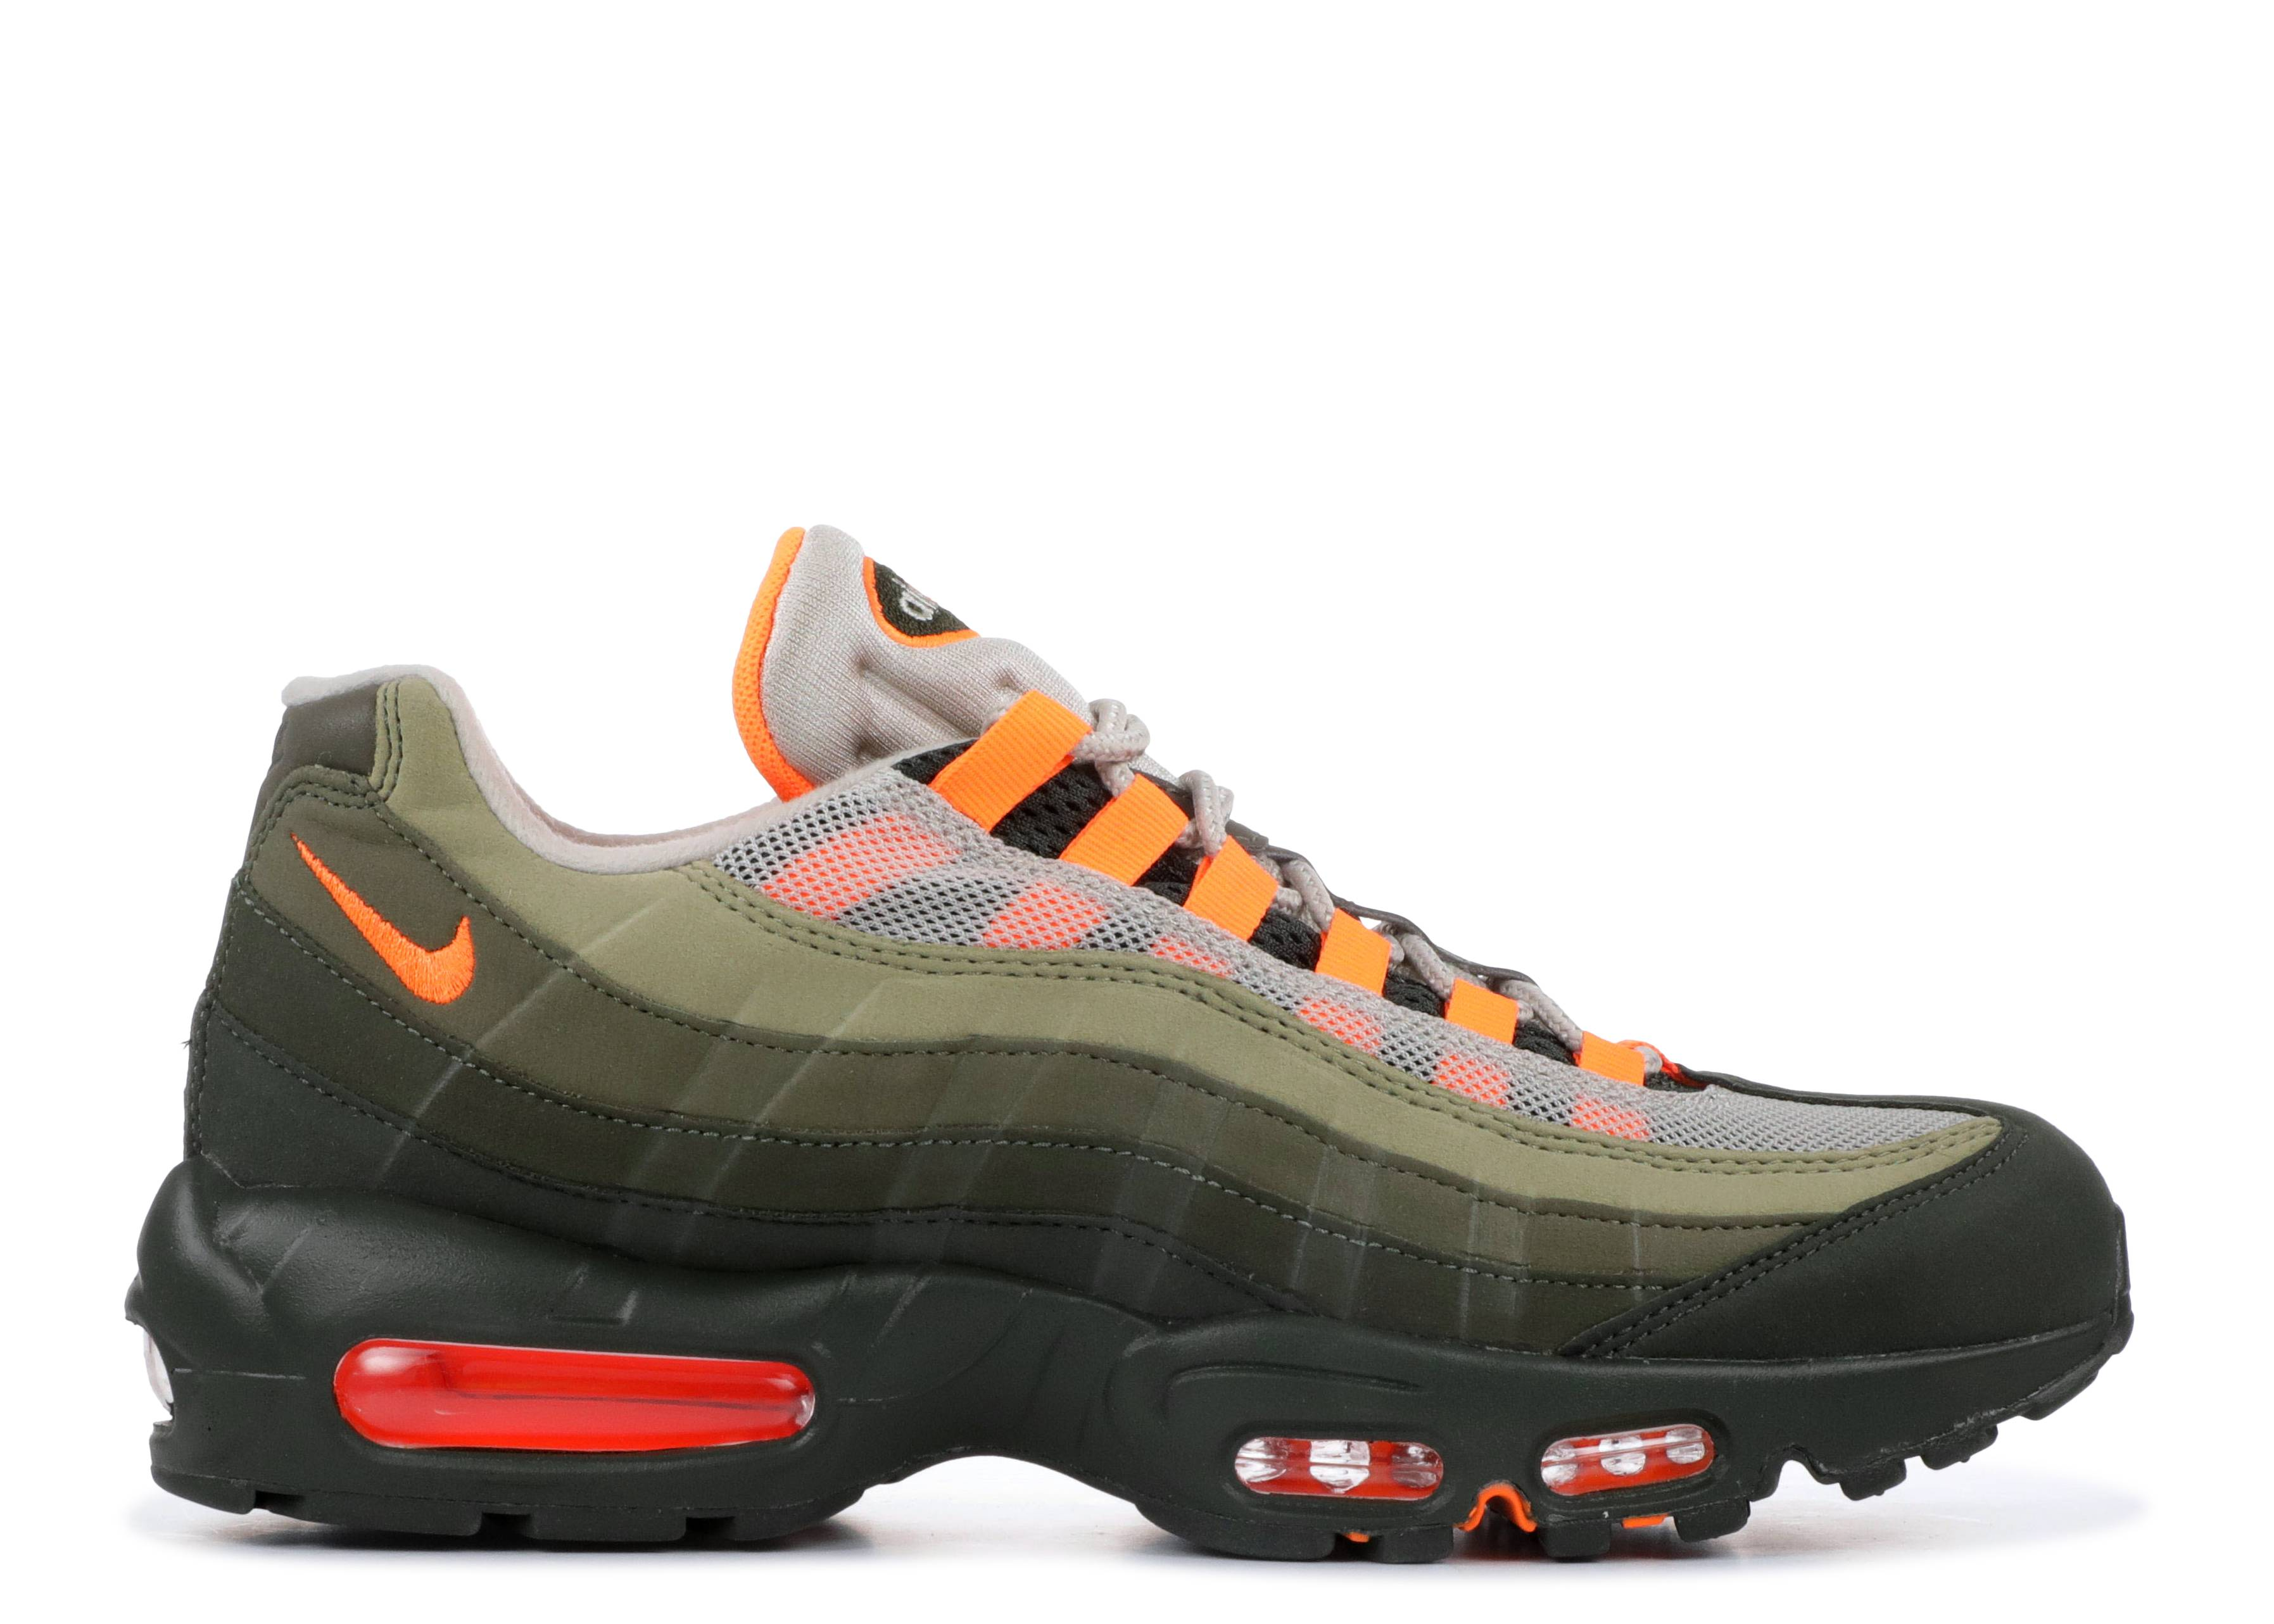 quality design 9a59c 75553 nike air max 95 og